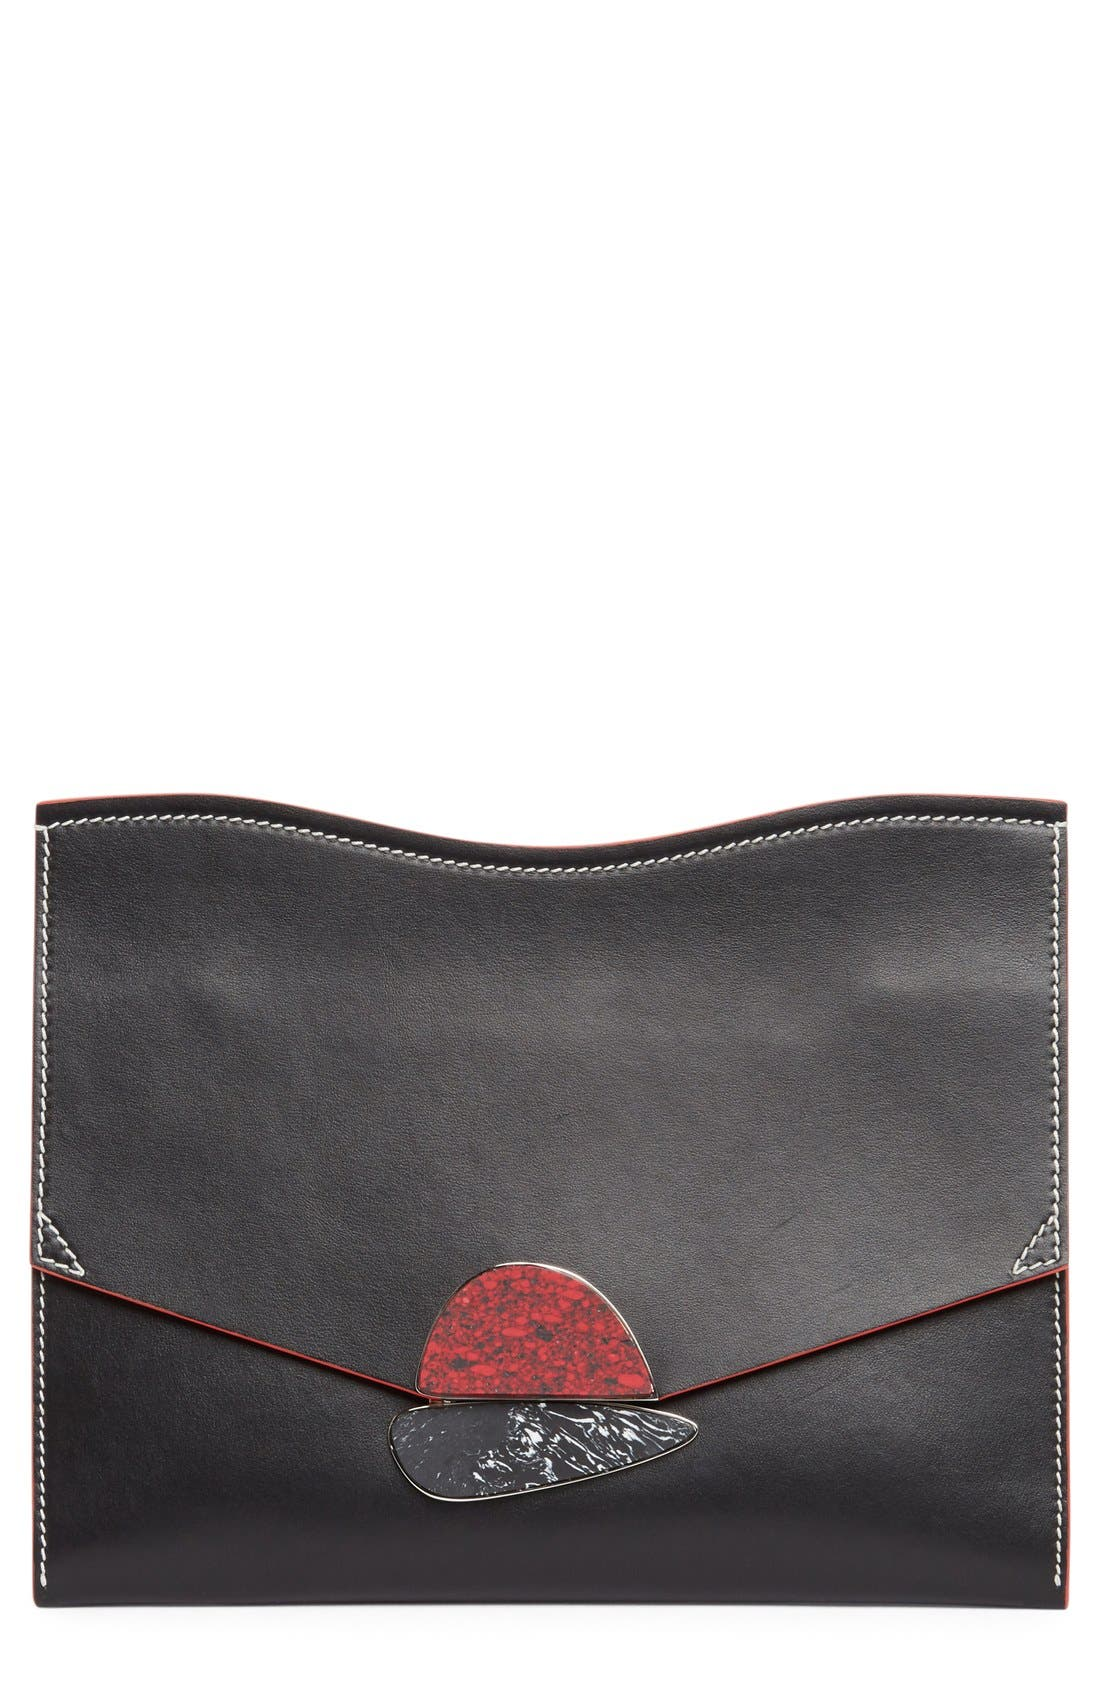 Proenza Schouler Medium Calfskin Leather Clutch